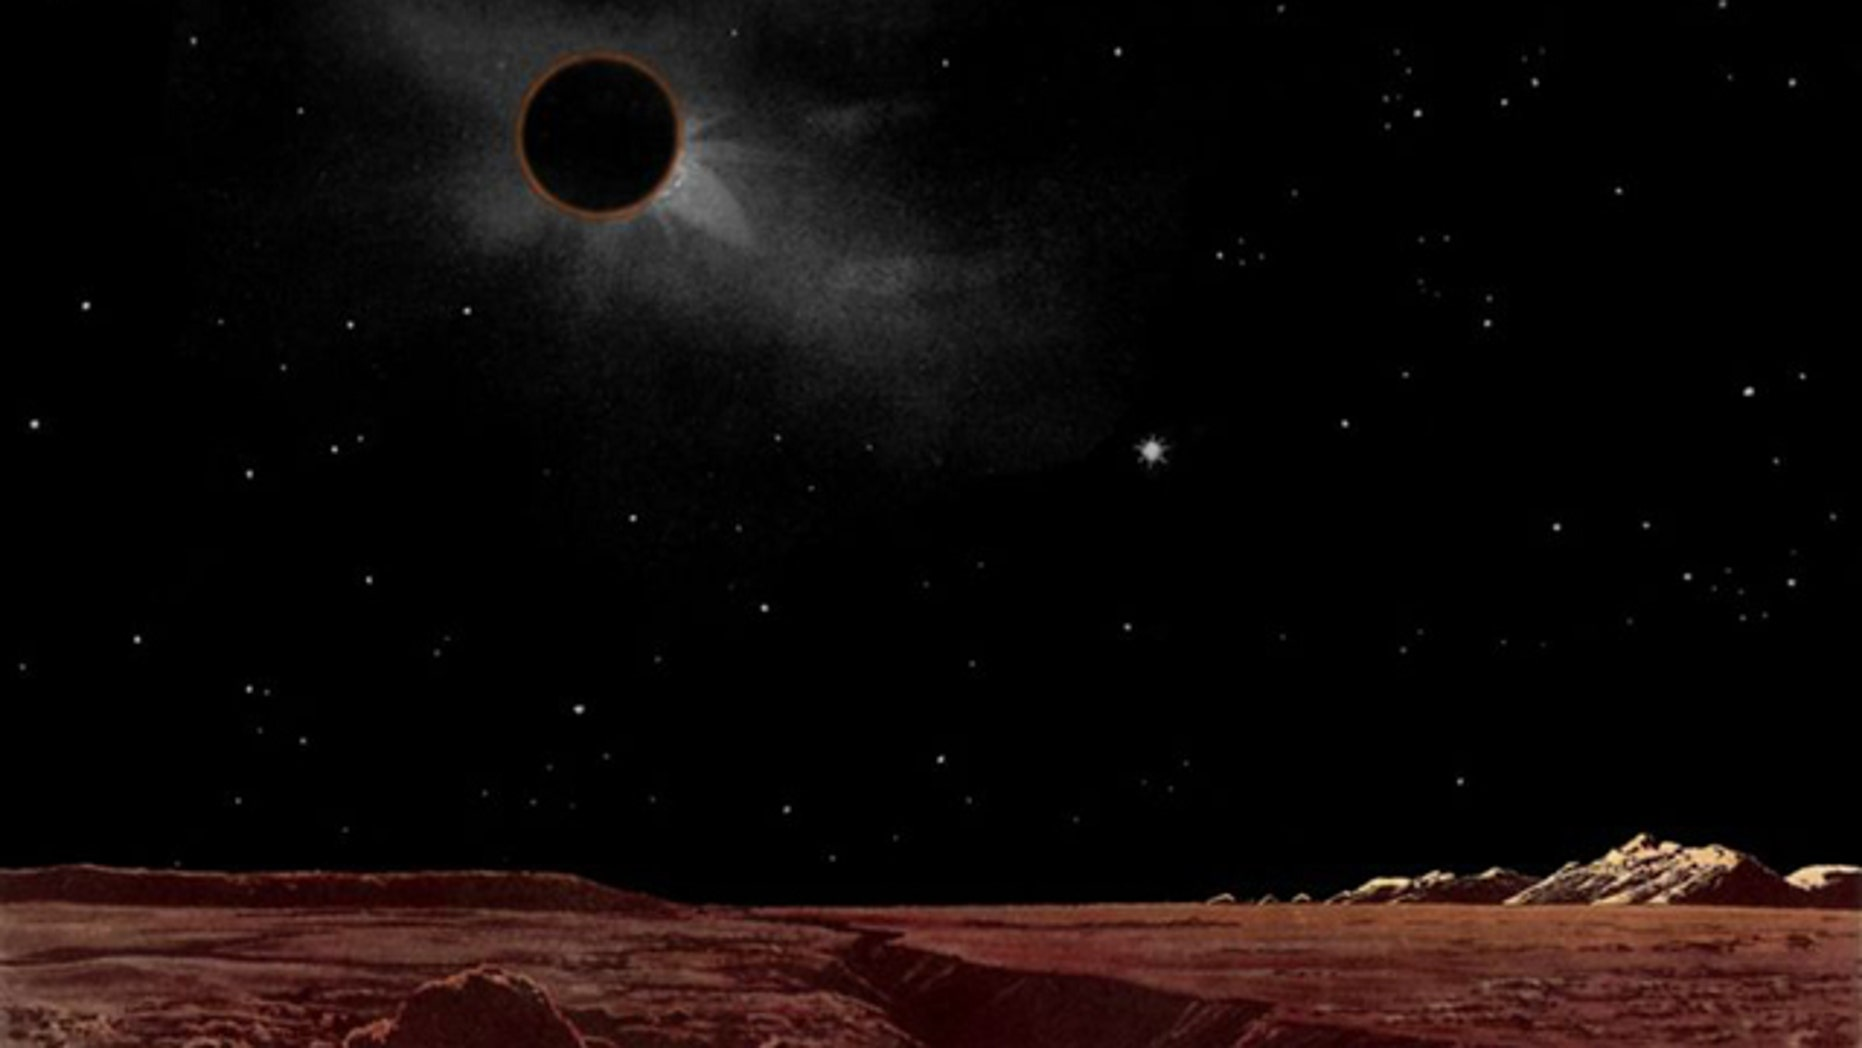 A painting of a total lunar eclipse viewed from the surface of the moon, as imagined by Lucien Rudax in the 1920s.